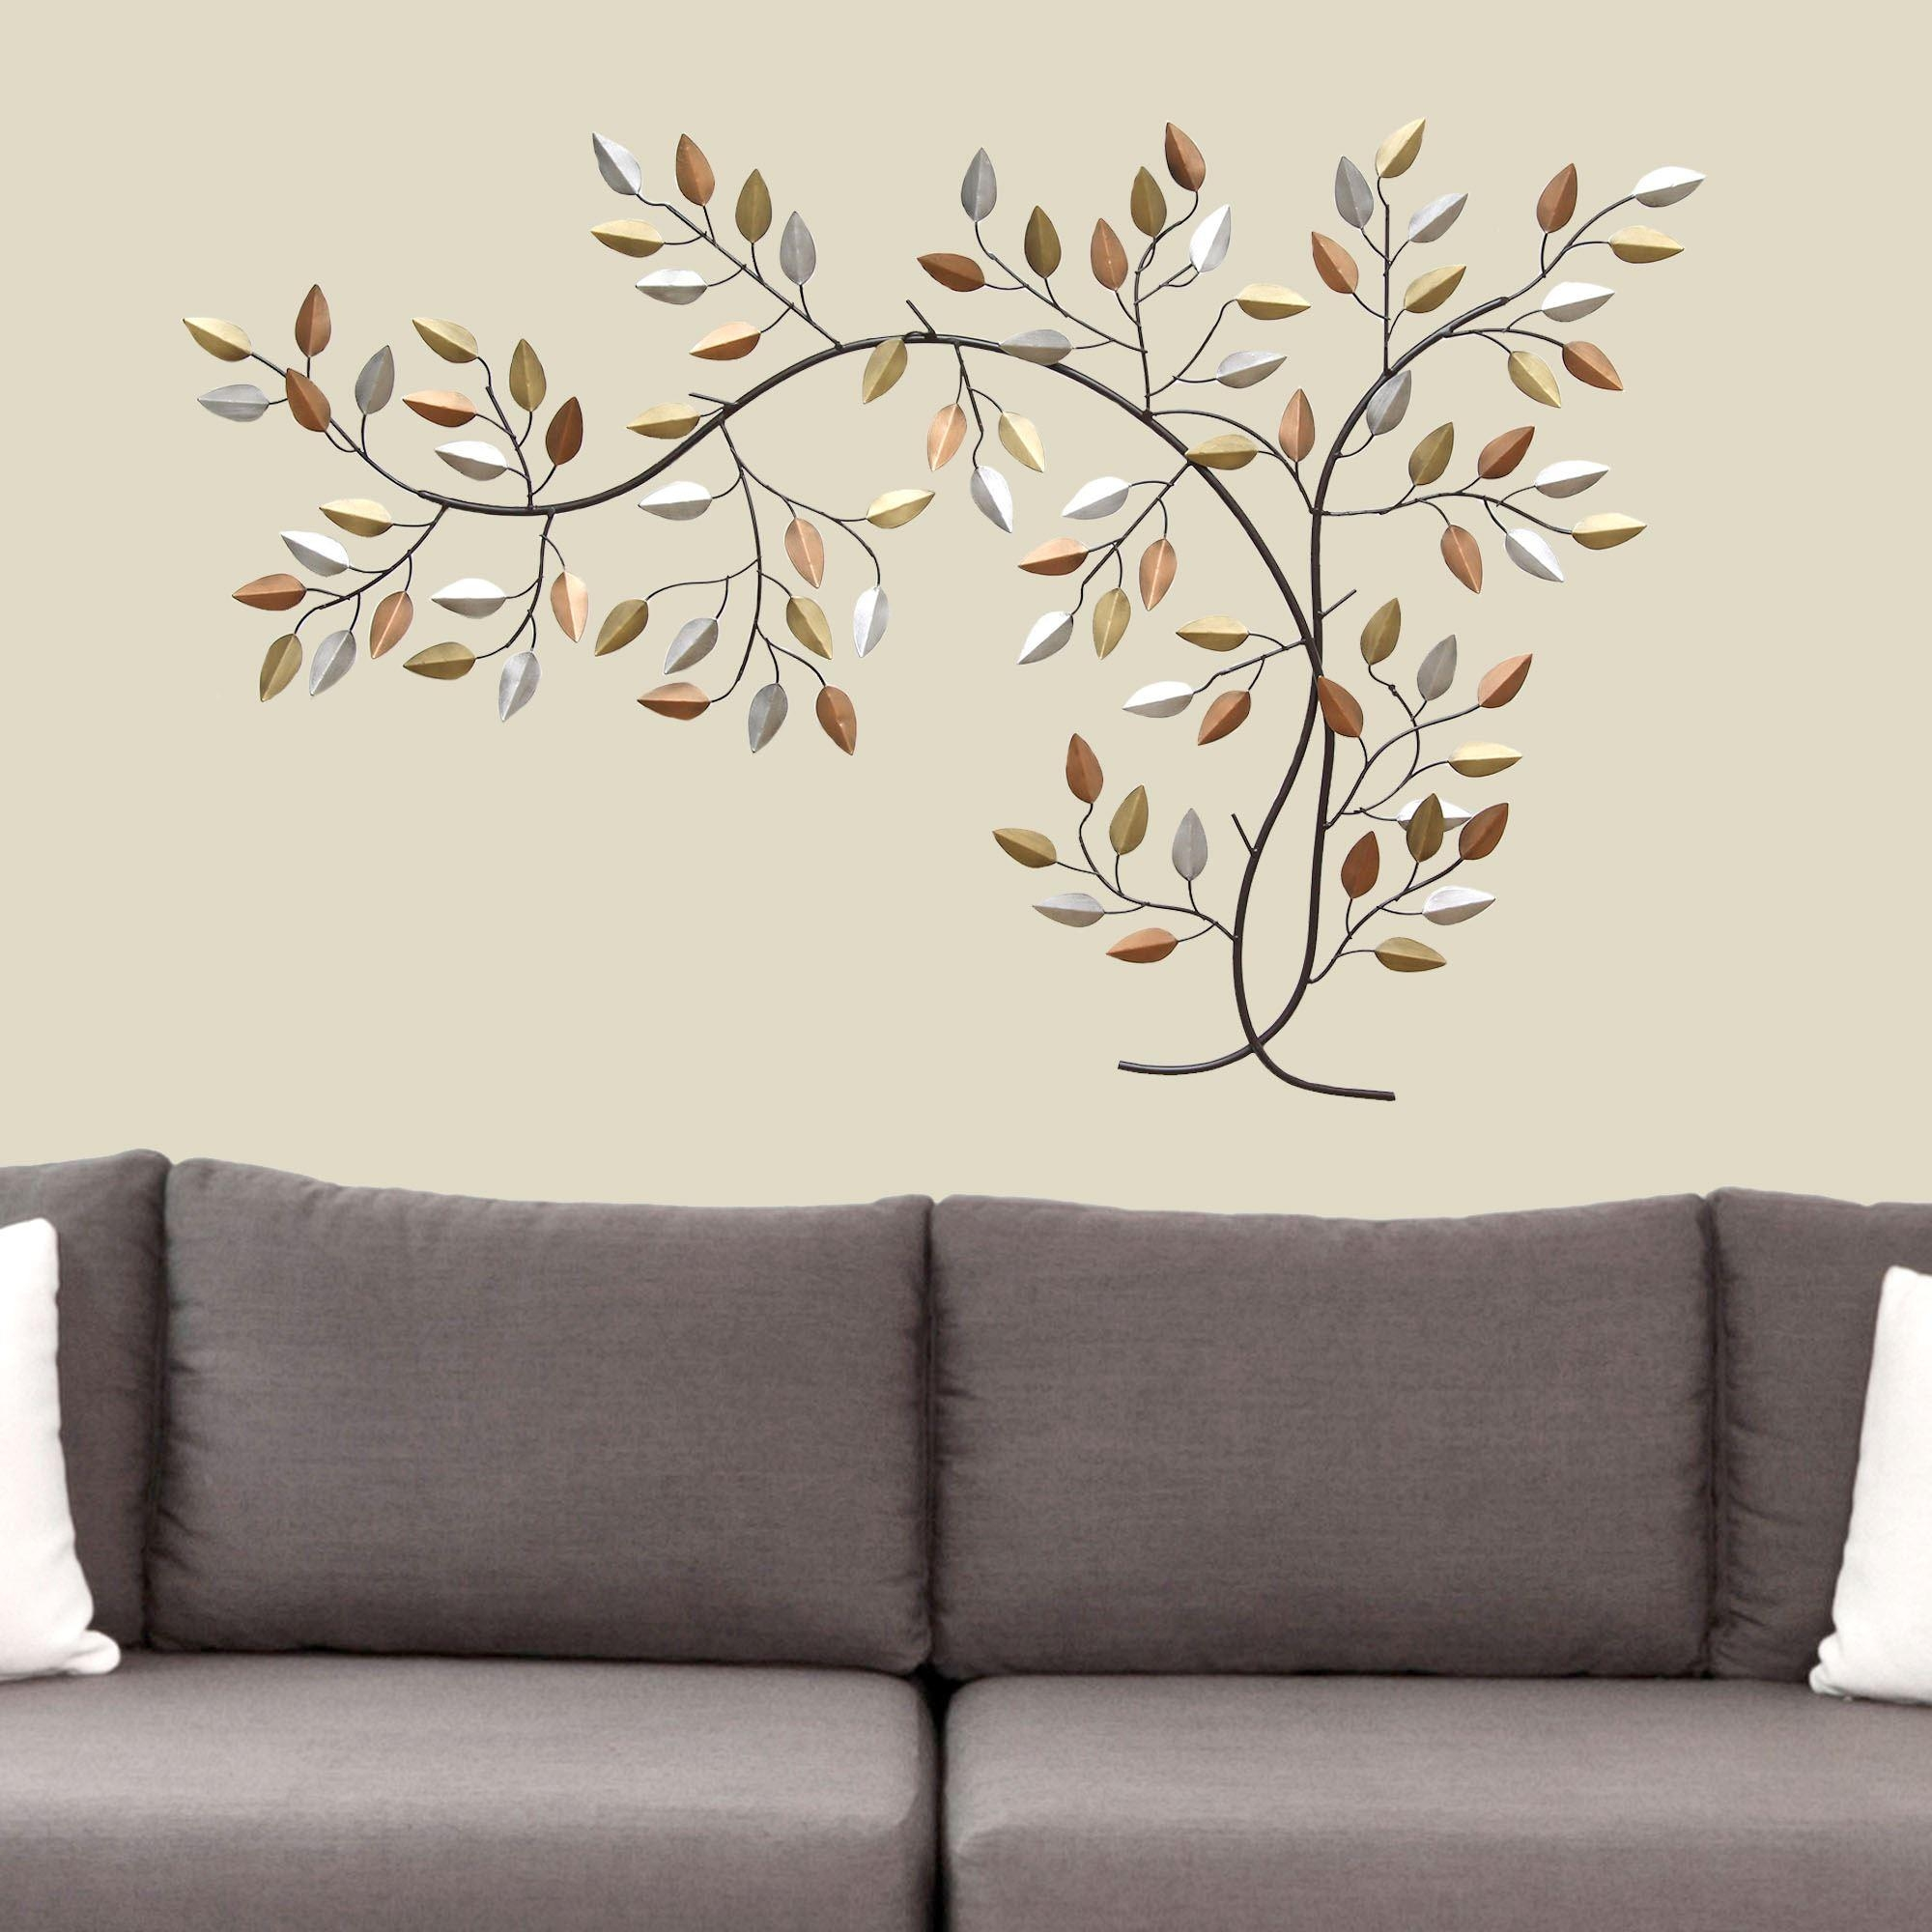 Leaf Branch Metal Wall Art Throughout Tree Branch Wall Art (Image 9 of 20)